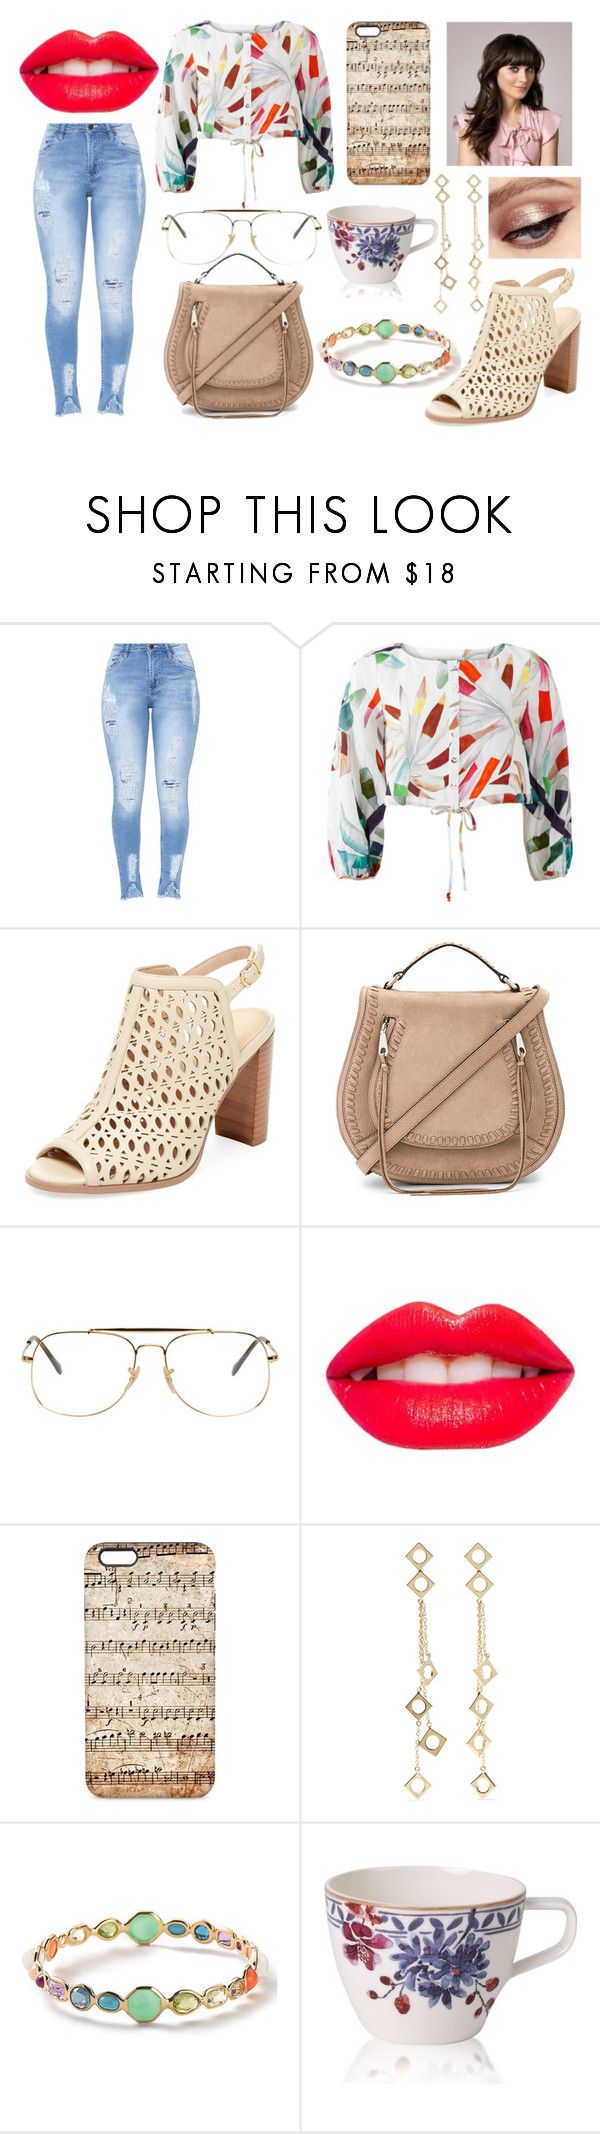 """Theodosia - Color Me Shocked"" by alexislexy ❤ liked on Polyvore featuring Mara Hoffman, Renvy, Rebecca Minkoff, Ray-Ban, Zooey, Arme De L'Amour, Ippolita and Villeroy & Boch"